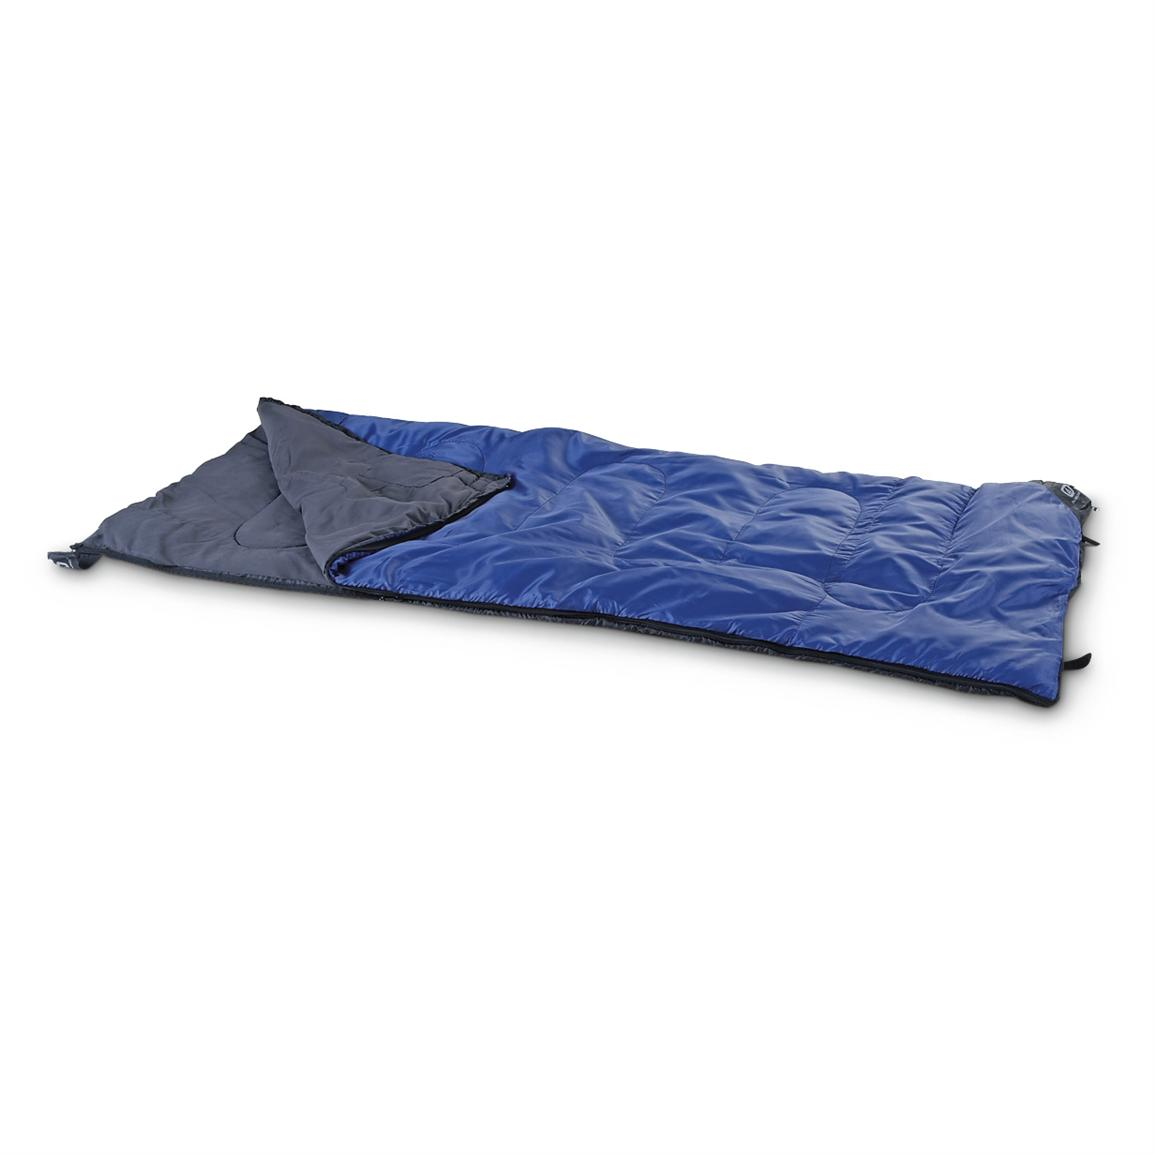 Outbound Classic 2 40 Degree Sleeping Bag • Comfort rated to 40 Degrees F • Measures 33 x 75 inches long